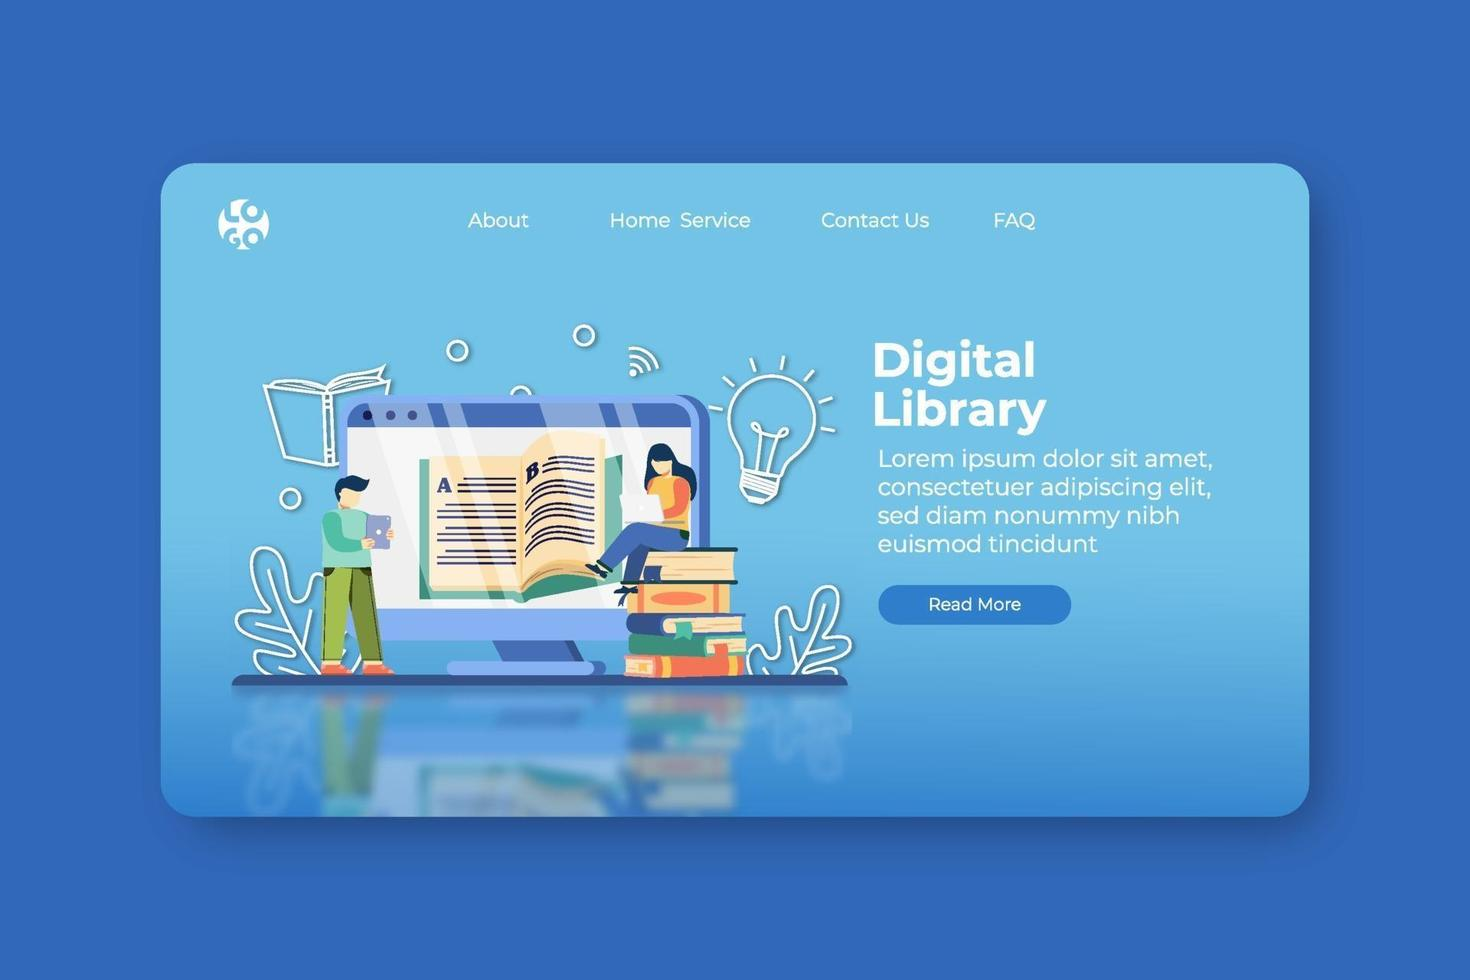 Modern Flat Design Vector Illustration. Digital Library Landing Page and Web Banner Template. E-Book, Encyclopedia, Study Literature, Learn anywhere, Distance Education, Book is Knowledge